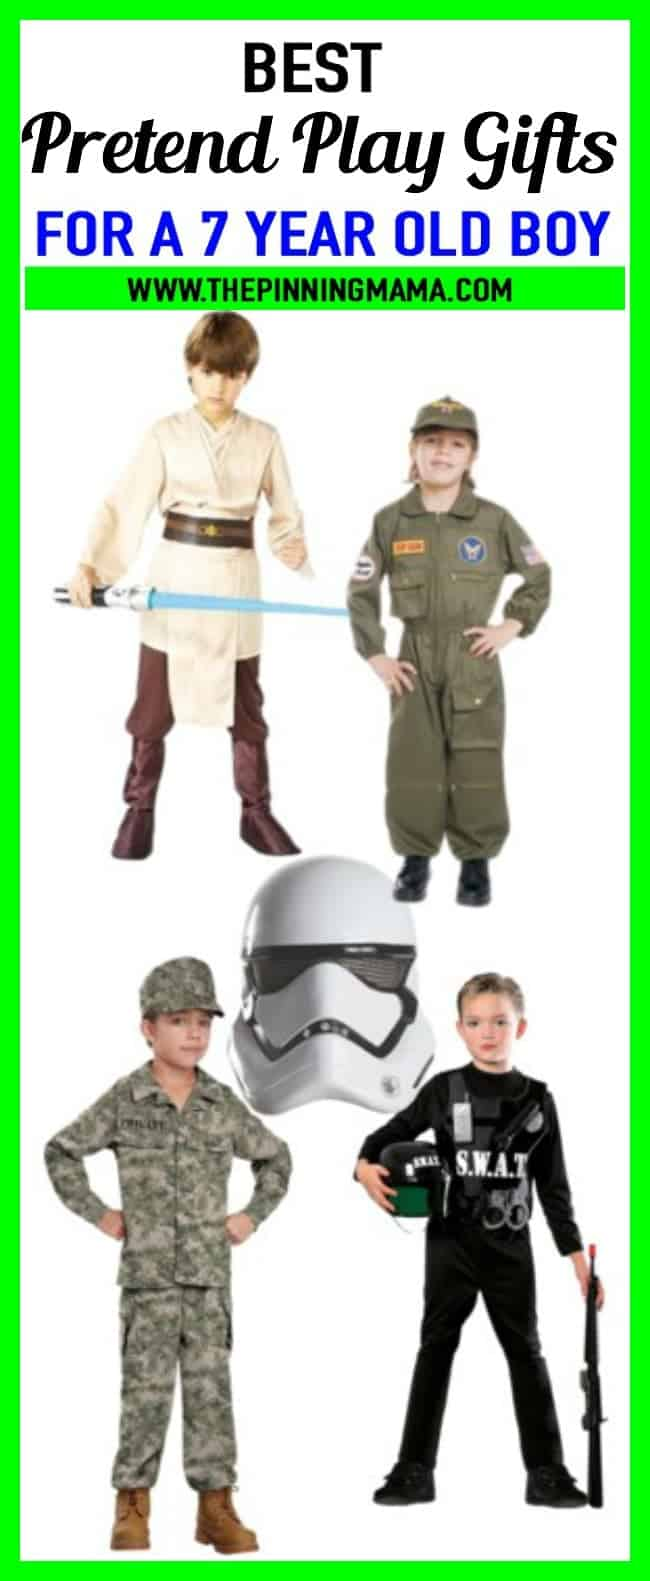 Best Gift Ideas For A 7 Year Old Boy Who Loves Dress Up And Pretend Play